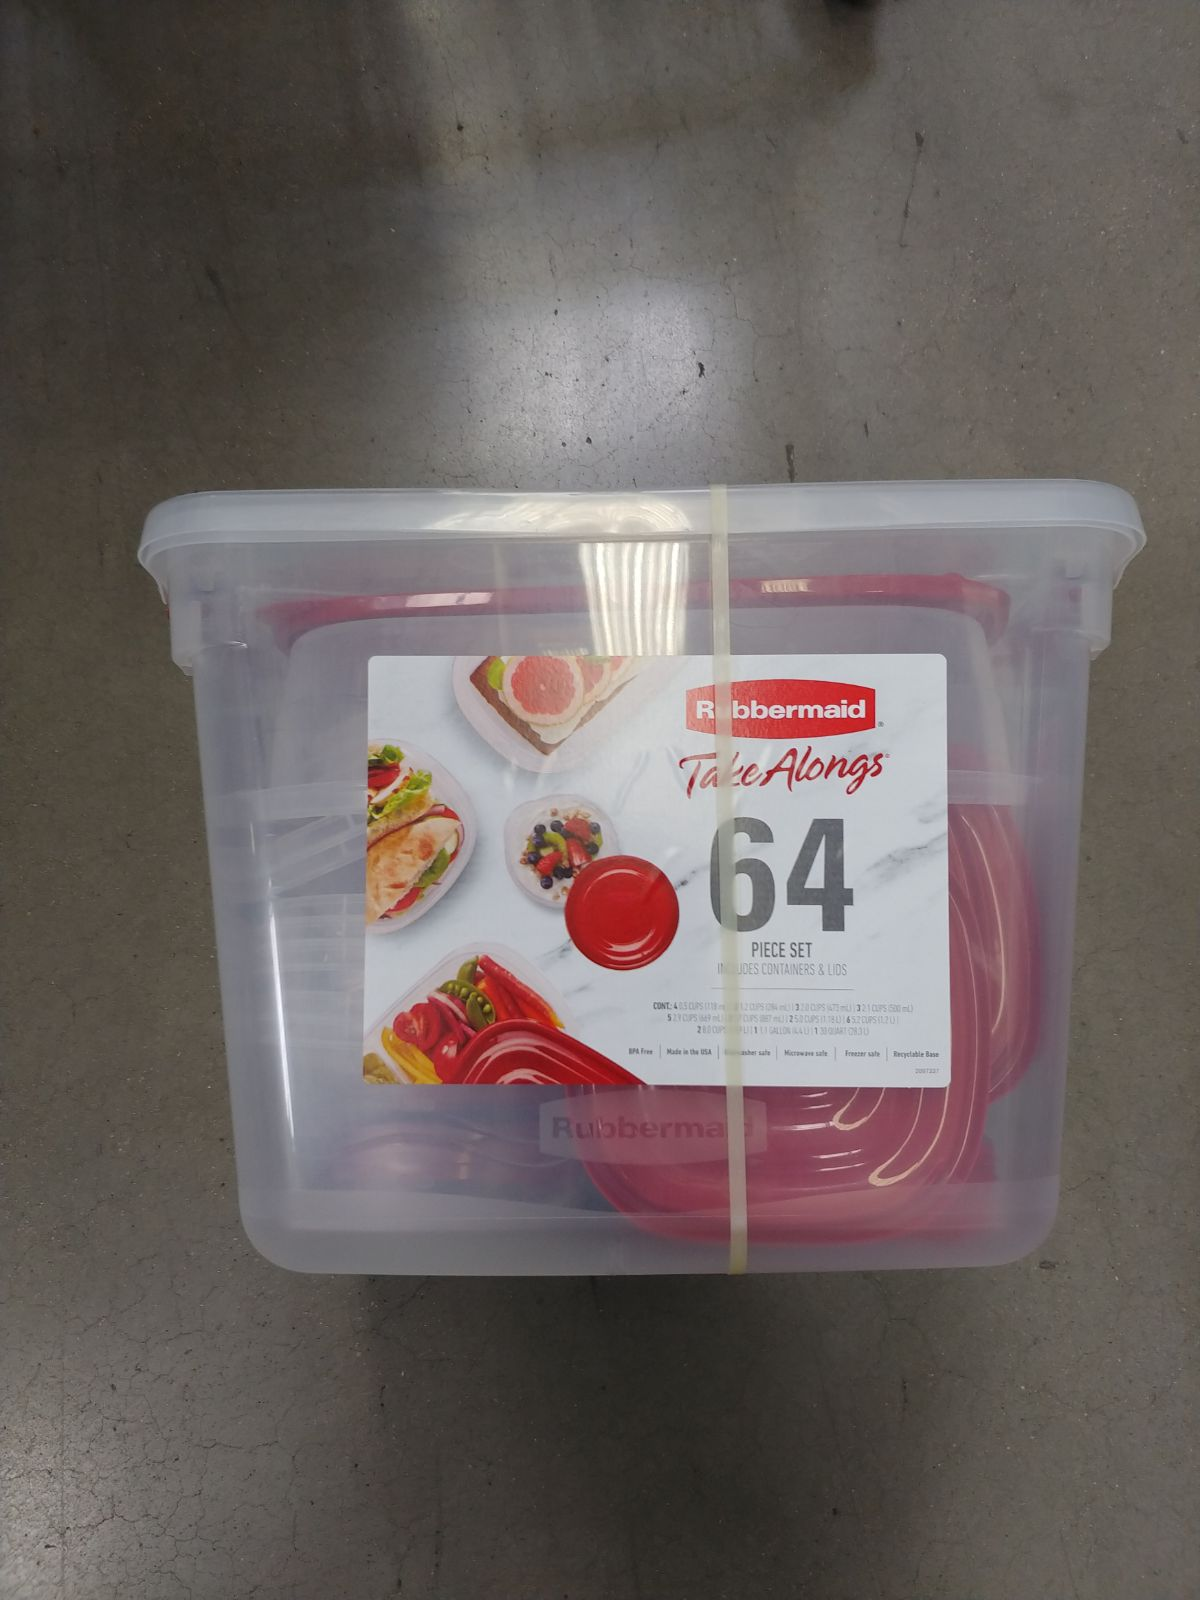 Rubbermaid Storage Containers 64pc Gift